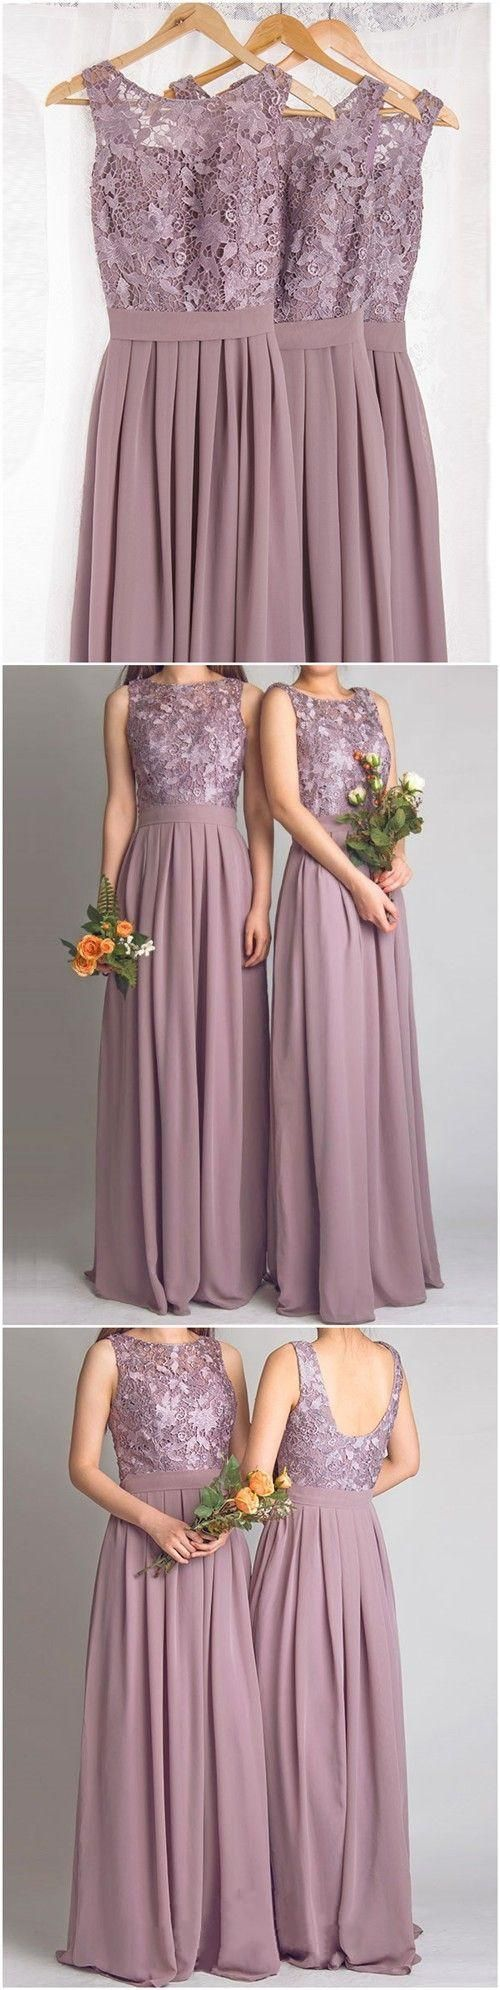 Dusty Mauve Bridesmaid Dresses For Wedding With Applique Pleat Jewel Sleeveless Open Backless Bridesmaid Gowns Long Formal Gowns Prom Gown Women, Men and Kids Outfit Ideas on our website at 7ootd.com #ootd #7ootd